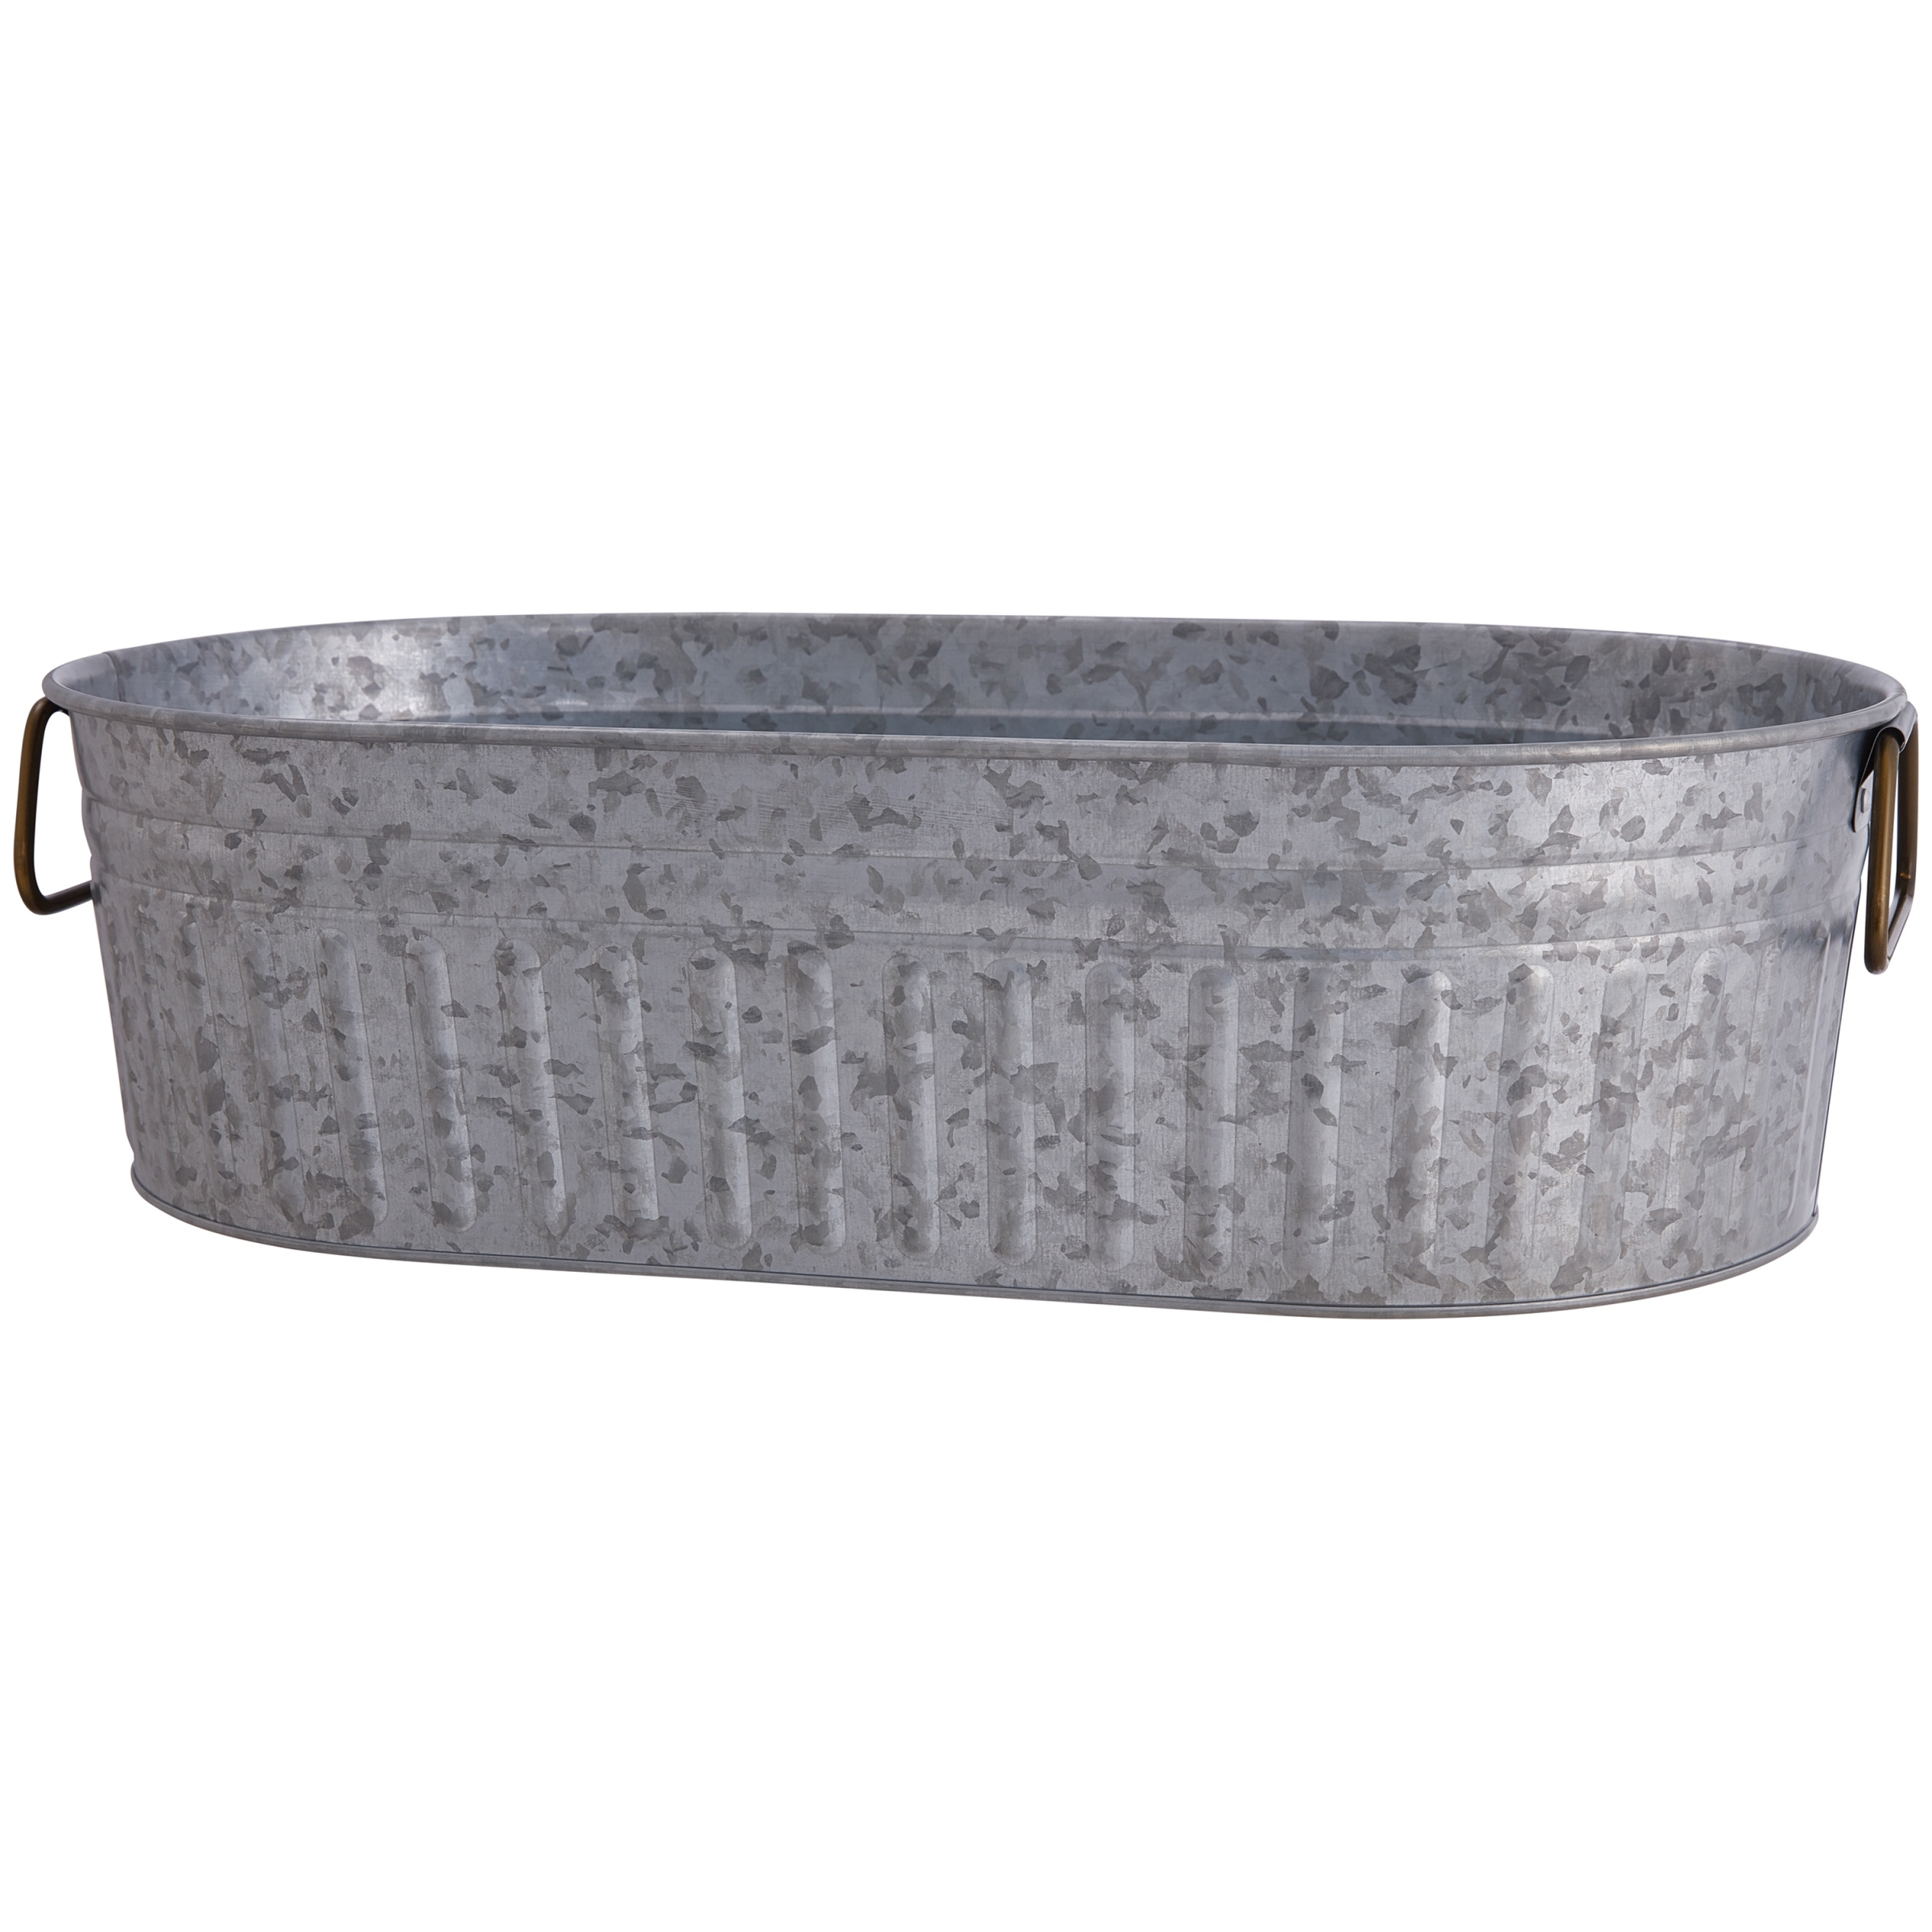 Better Homes And Gardens Galvanized Steel Oval Tub